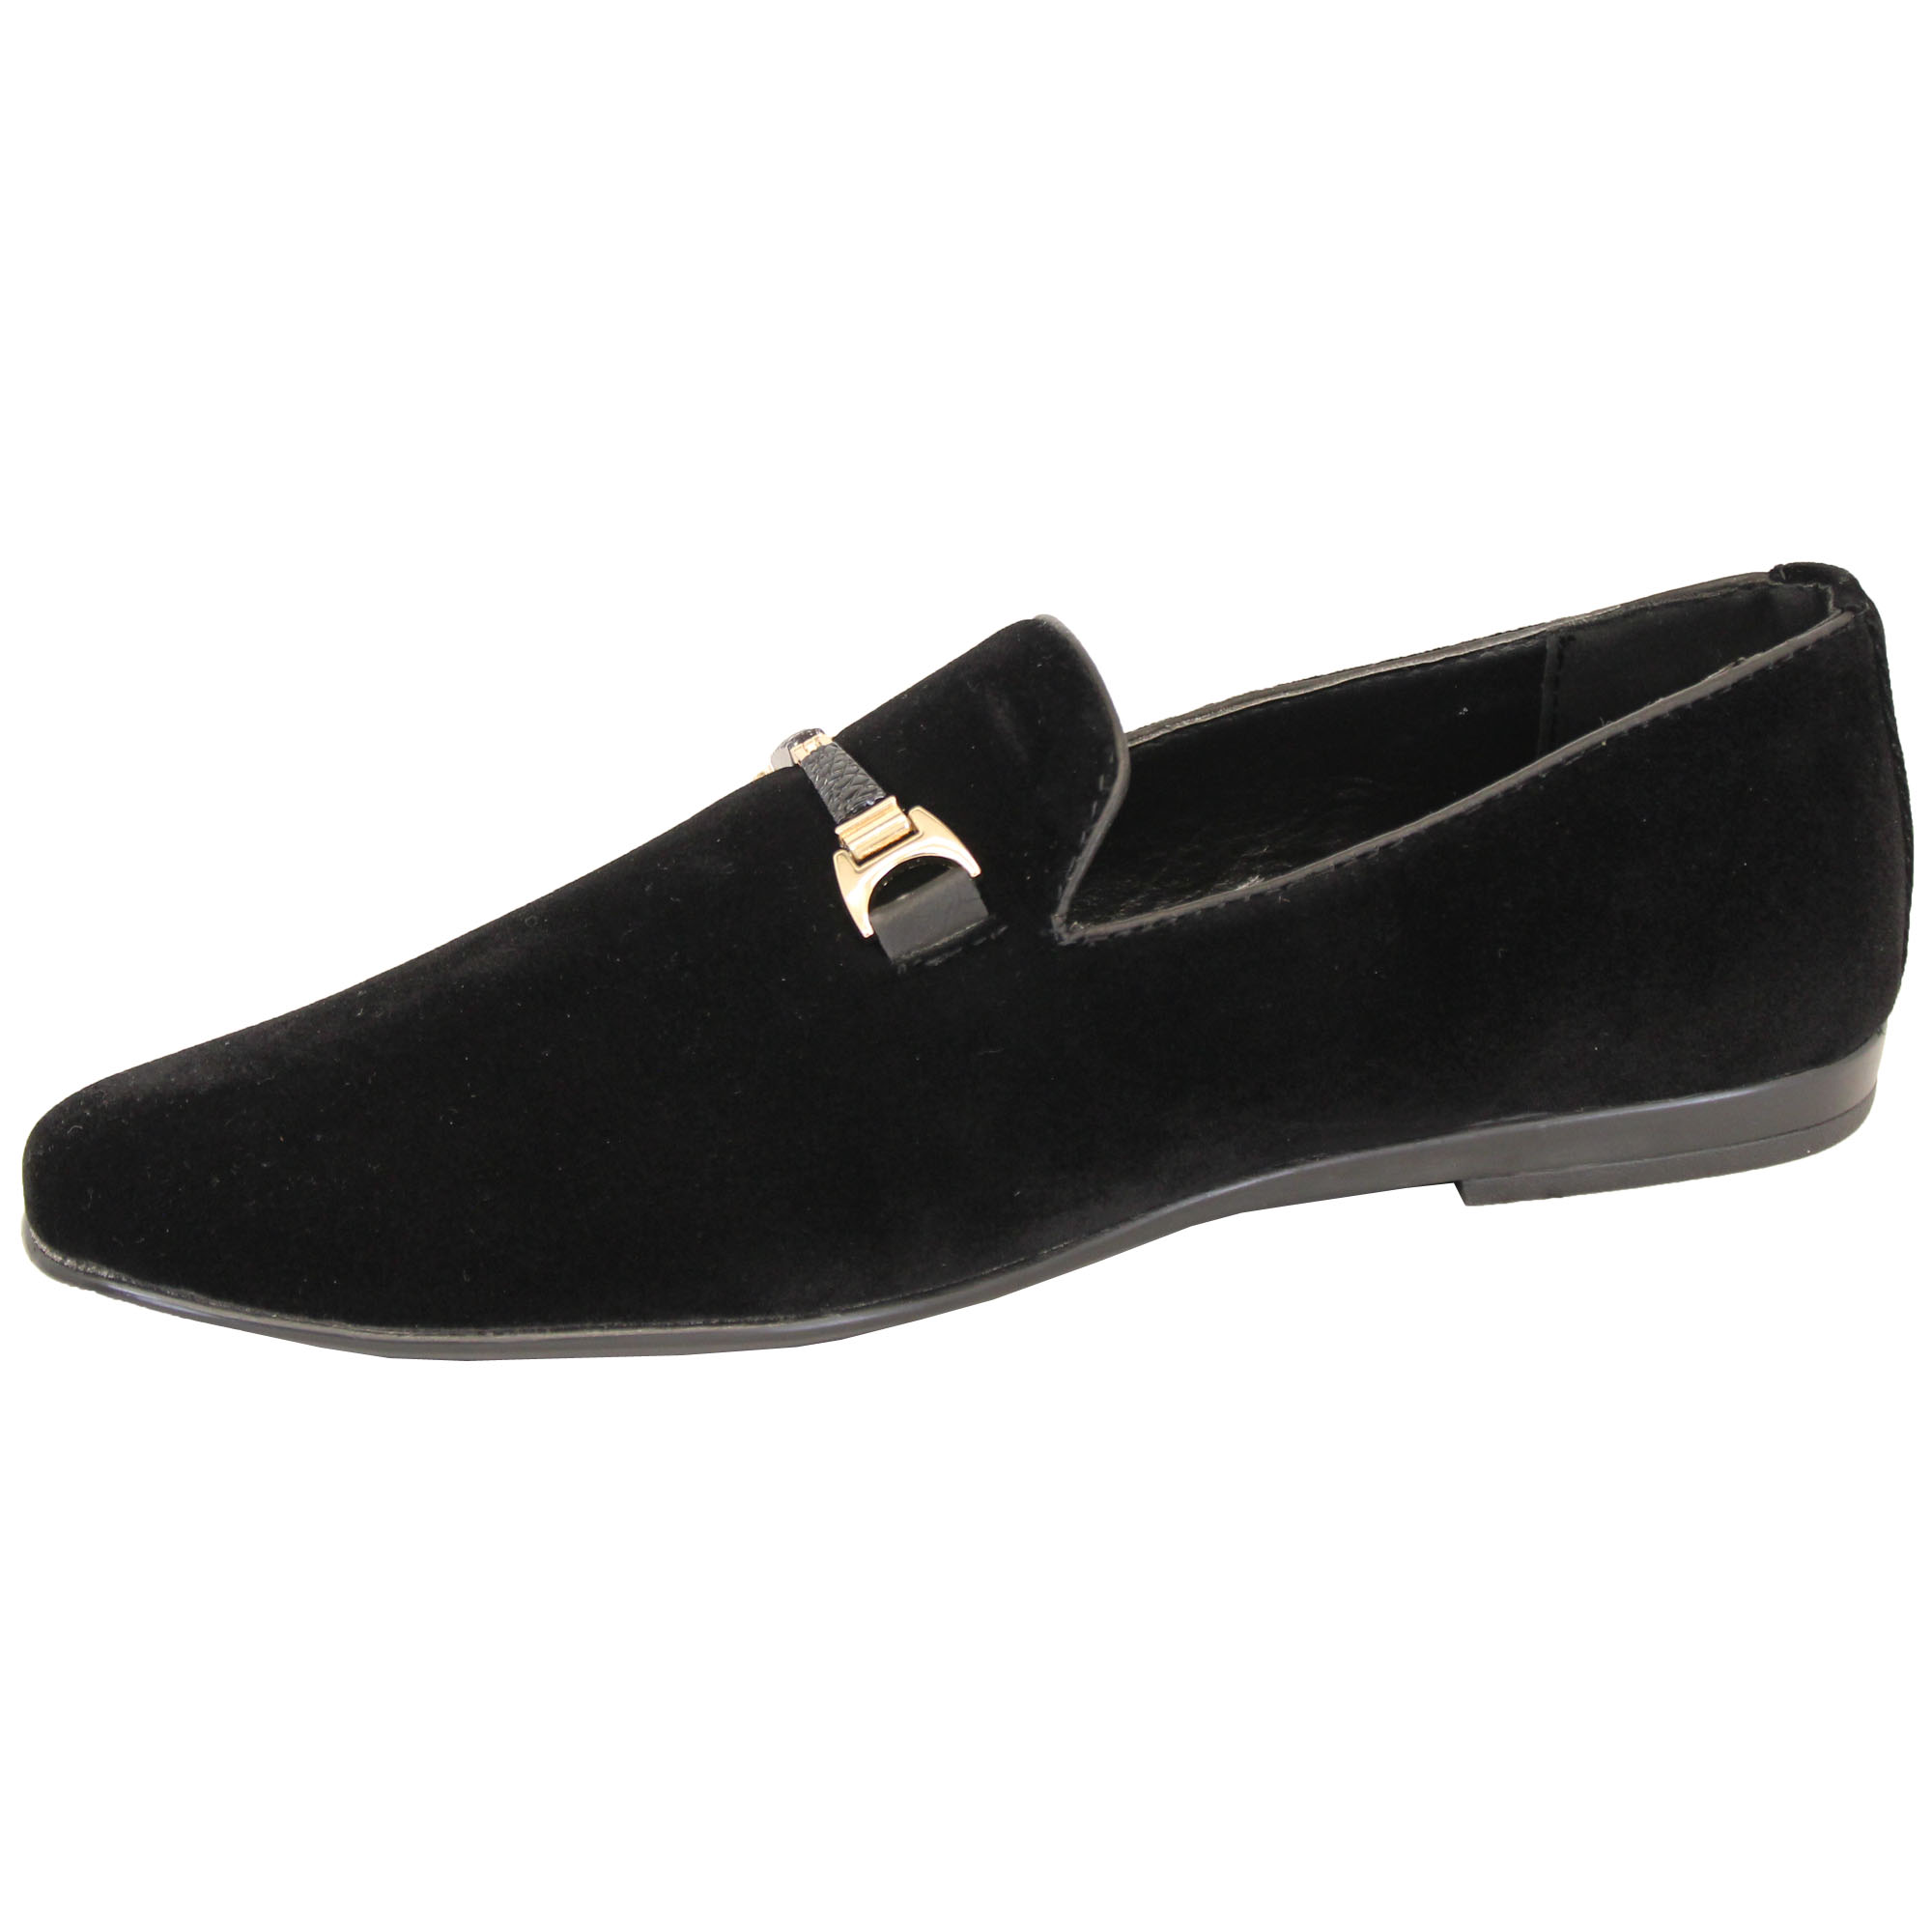 Mens-Slip-On-Italian-Shoes-Designer-Loafers-Suede-Look-Moccasin-Style-Fashion thumbnail 3